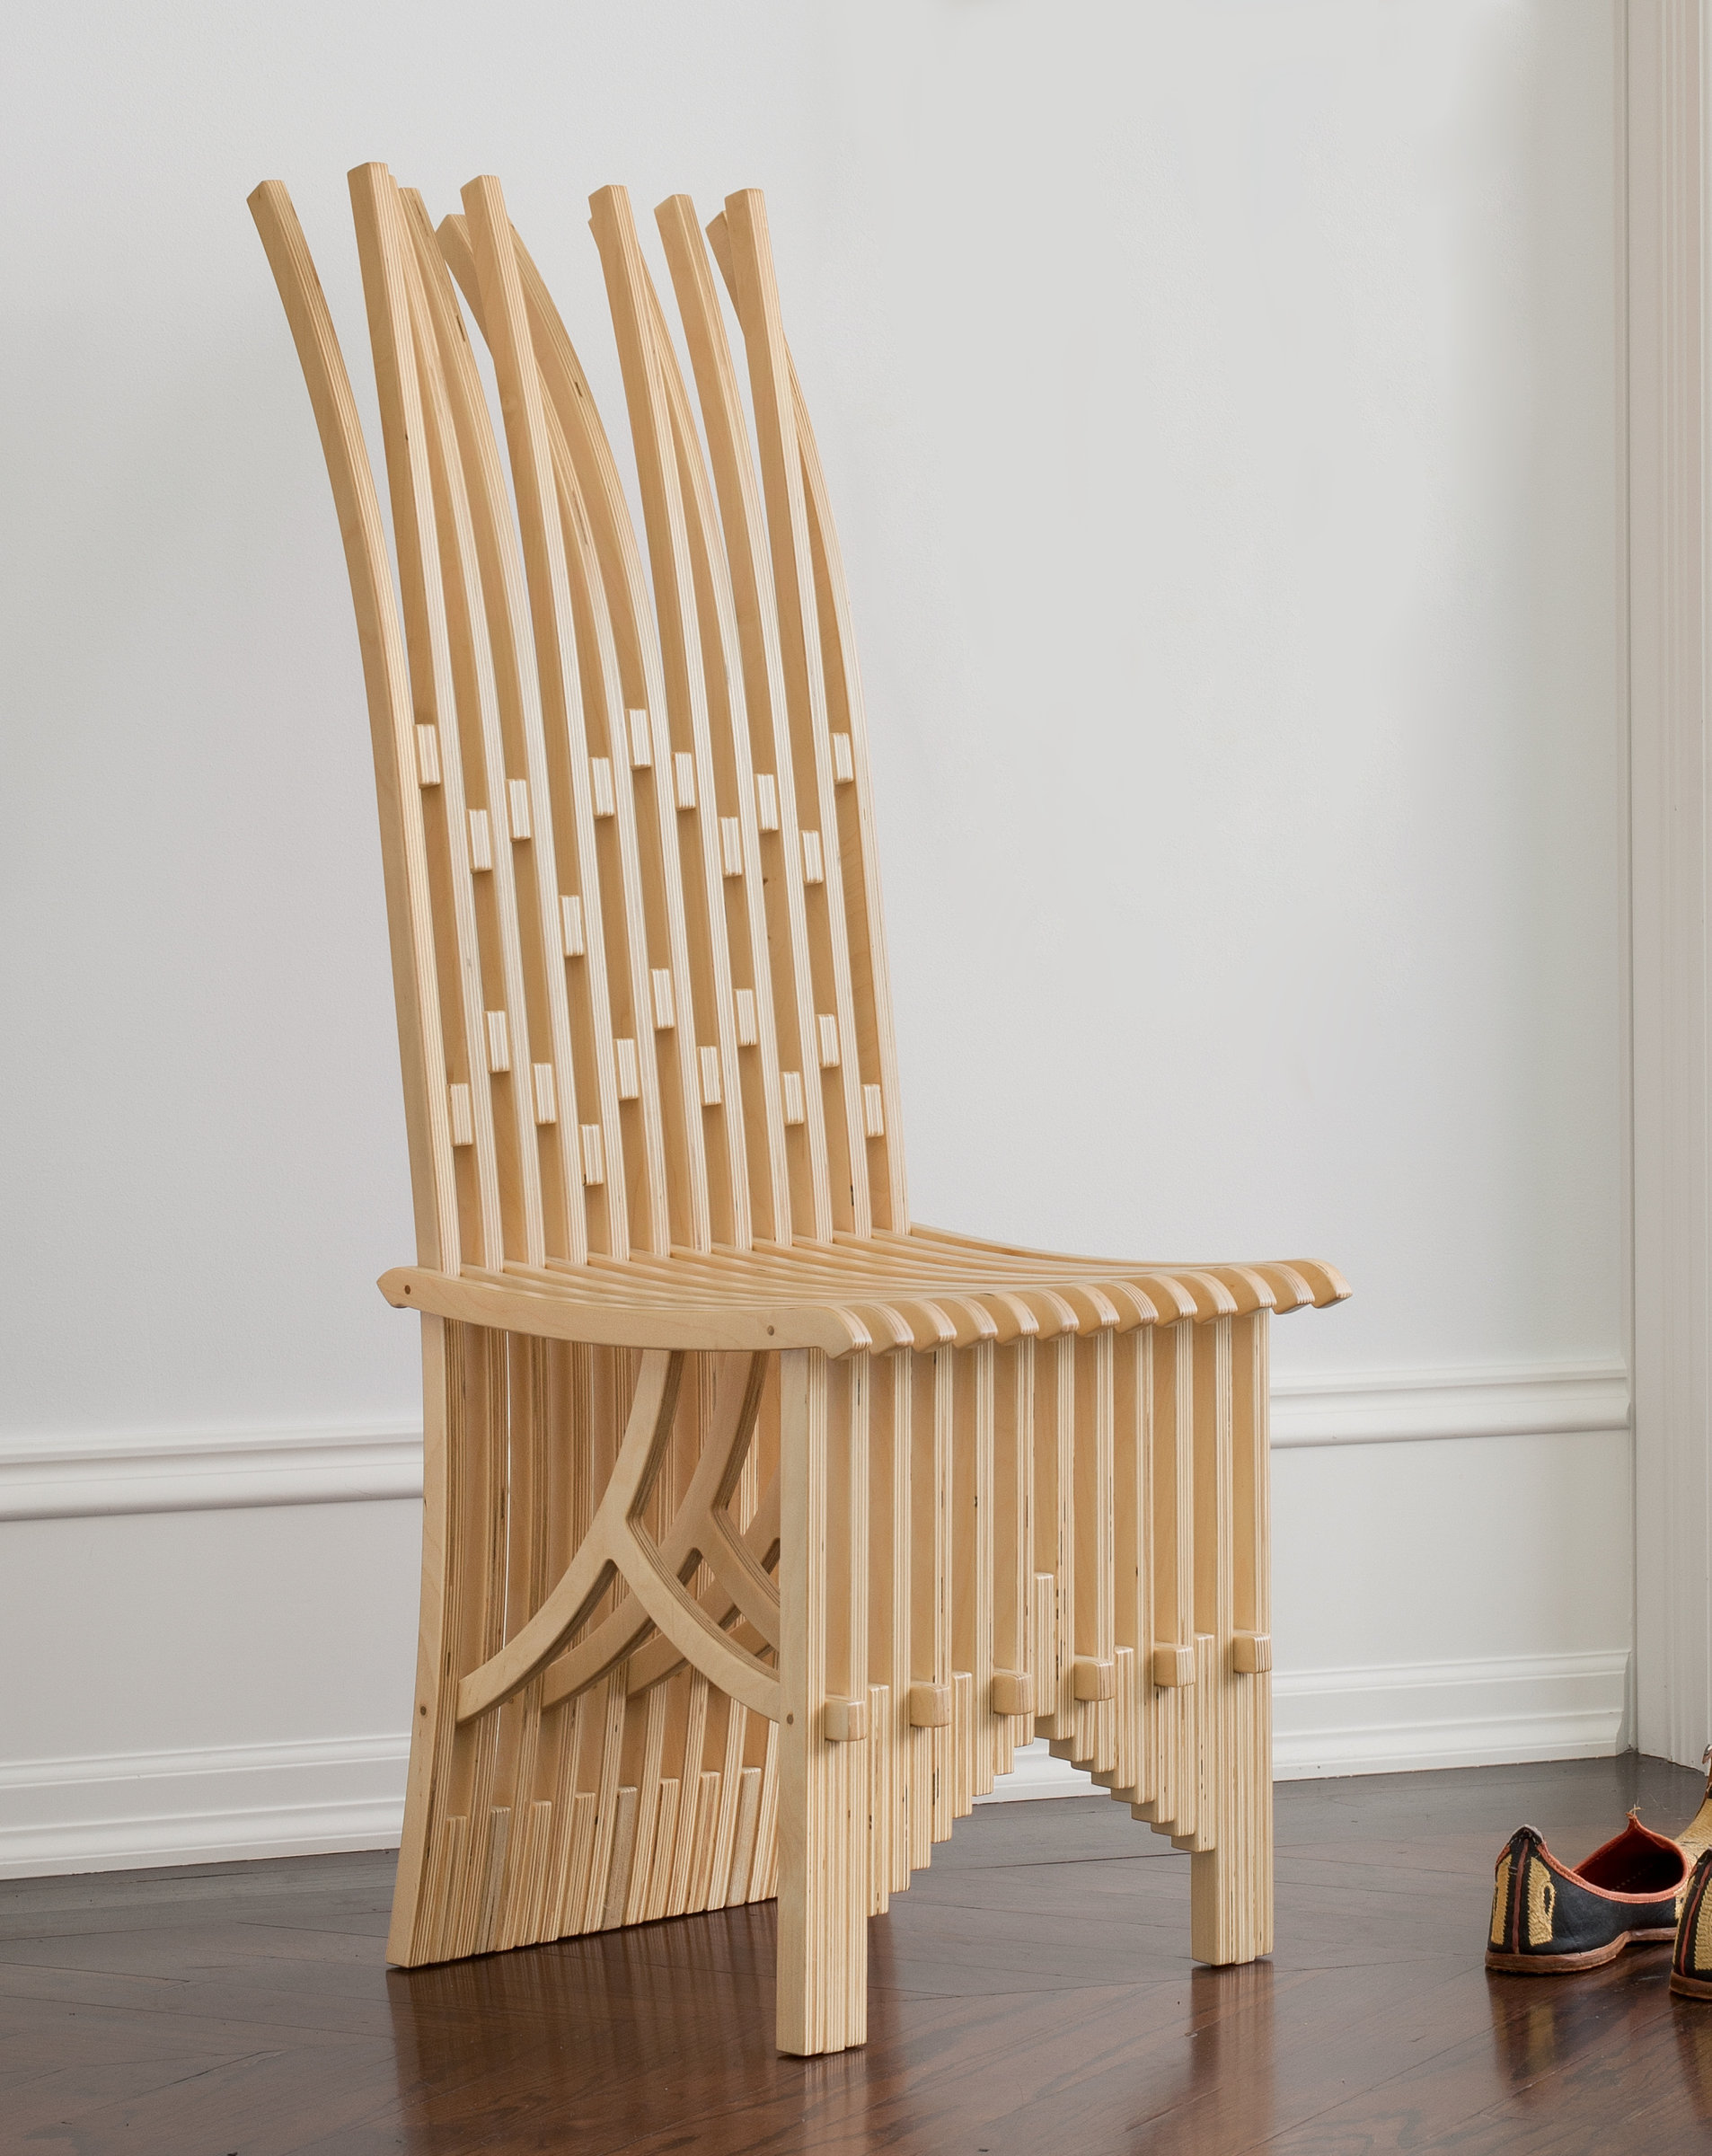 Mini frond chair by alan kaniarz wood artful home